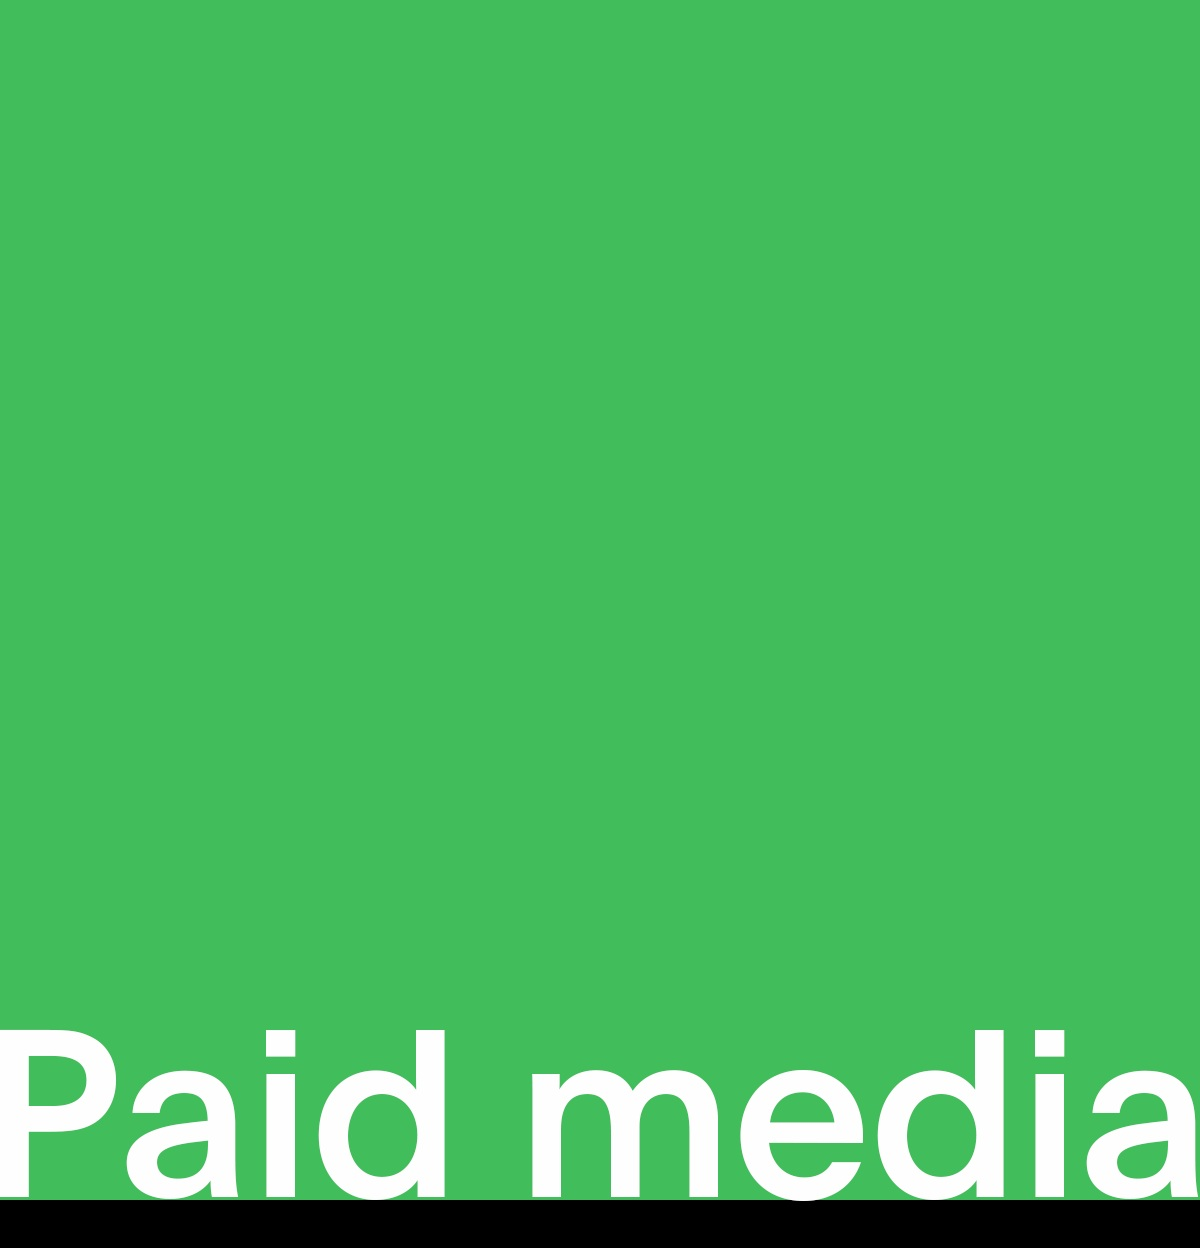 We manage paid media across all platforms, continuously optimizing to ensure conversion for acquisition, donations, and sales.